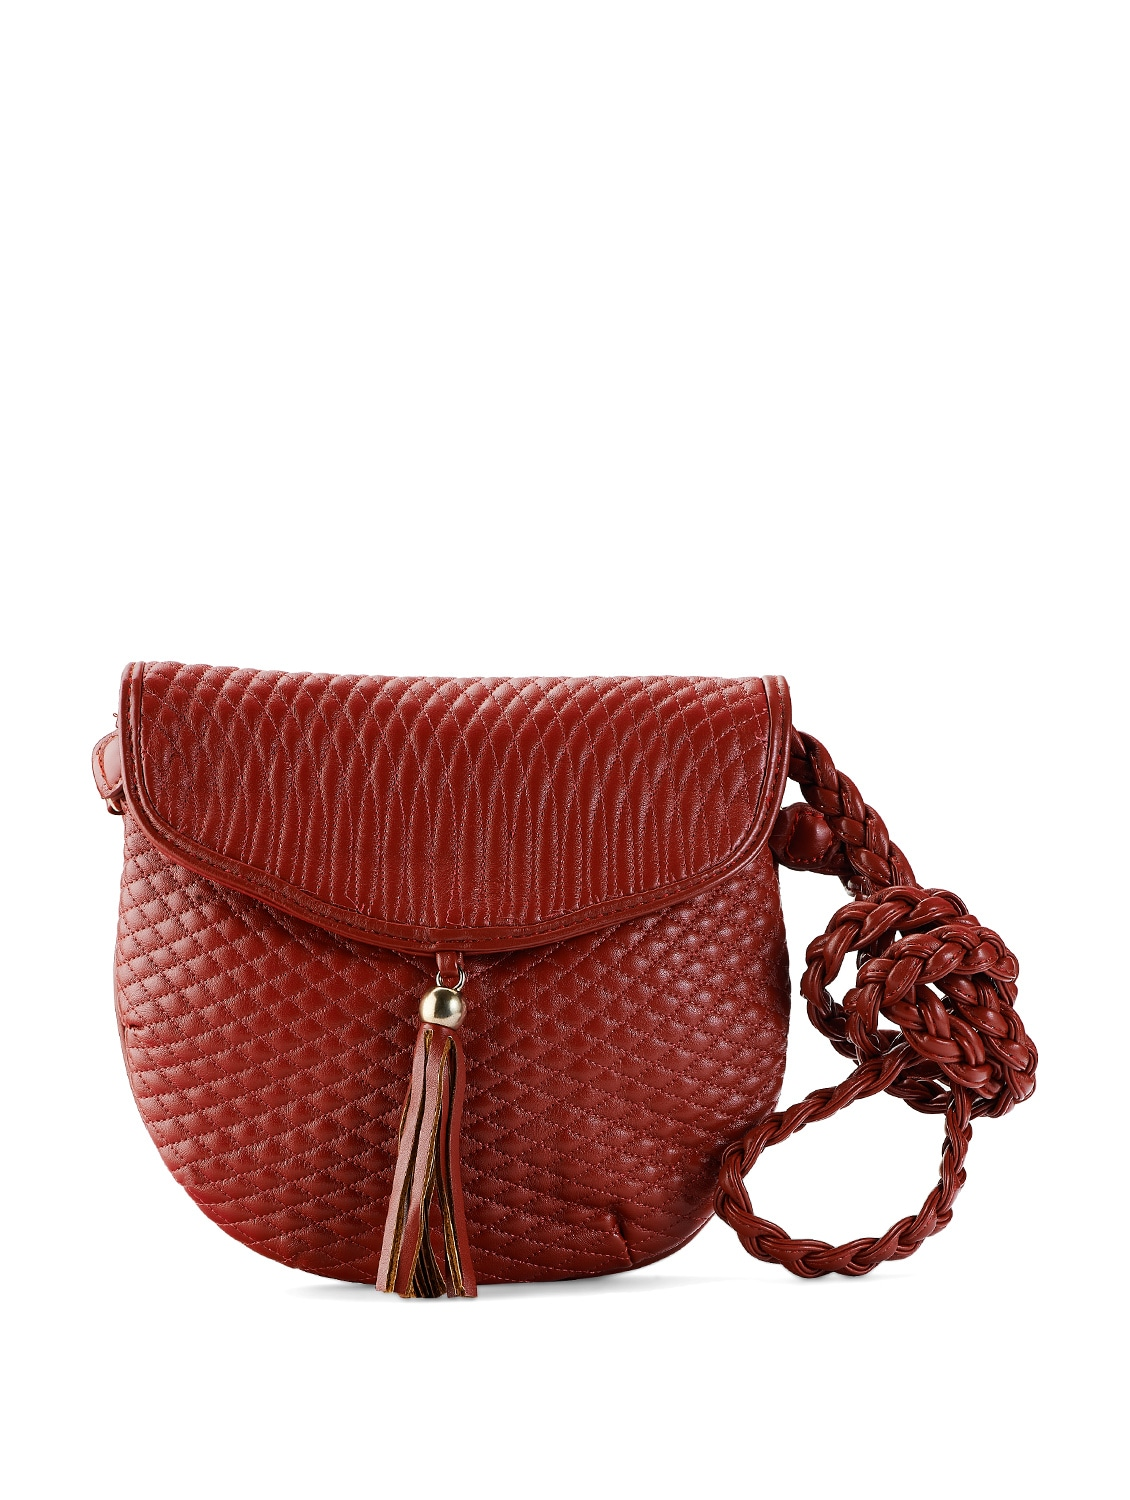 Red Quilted Sling Bag - Toniq